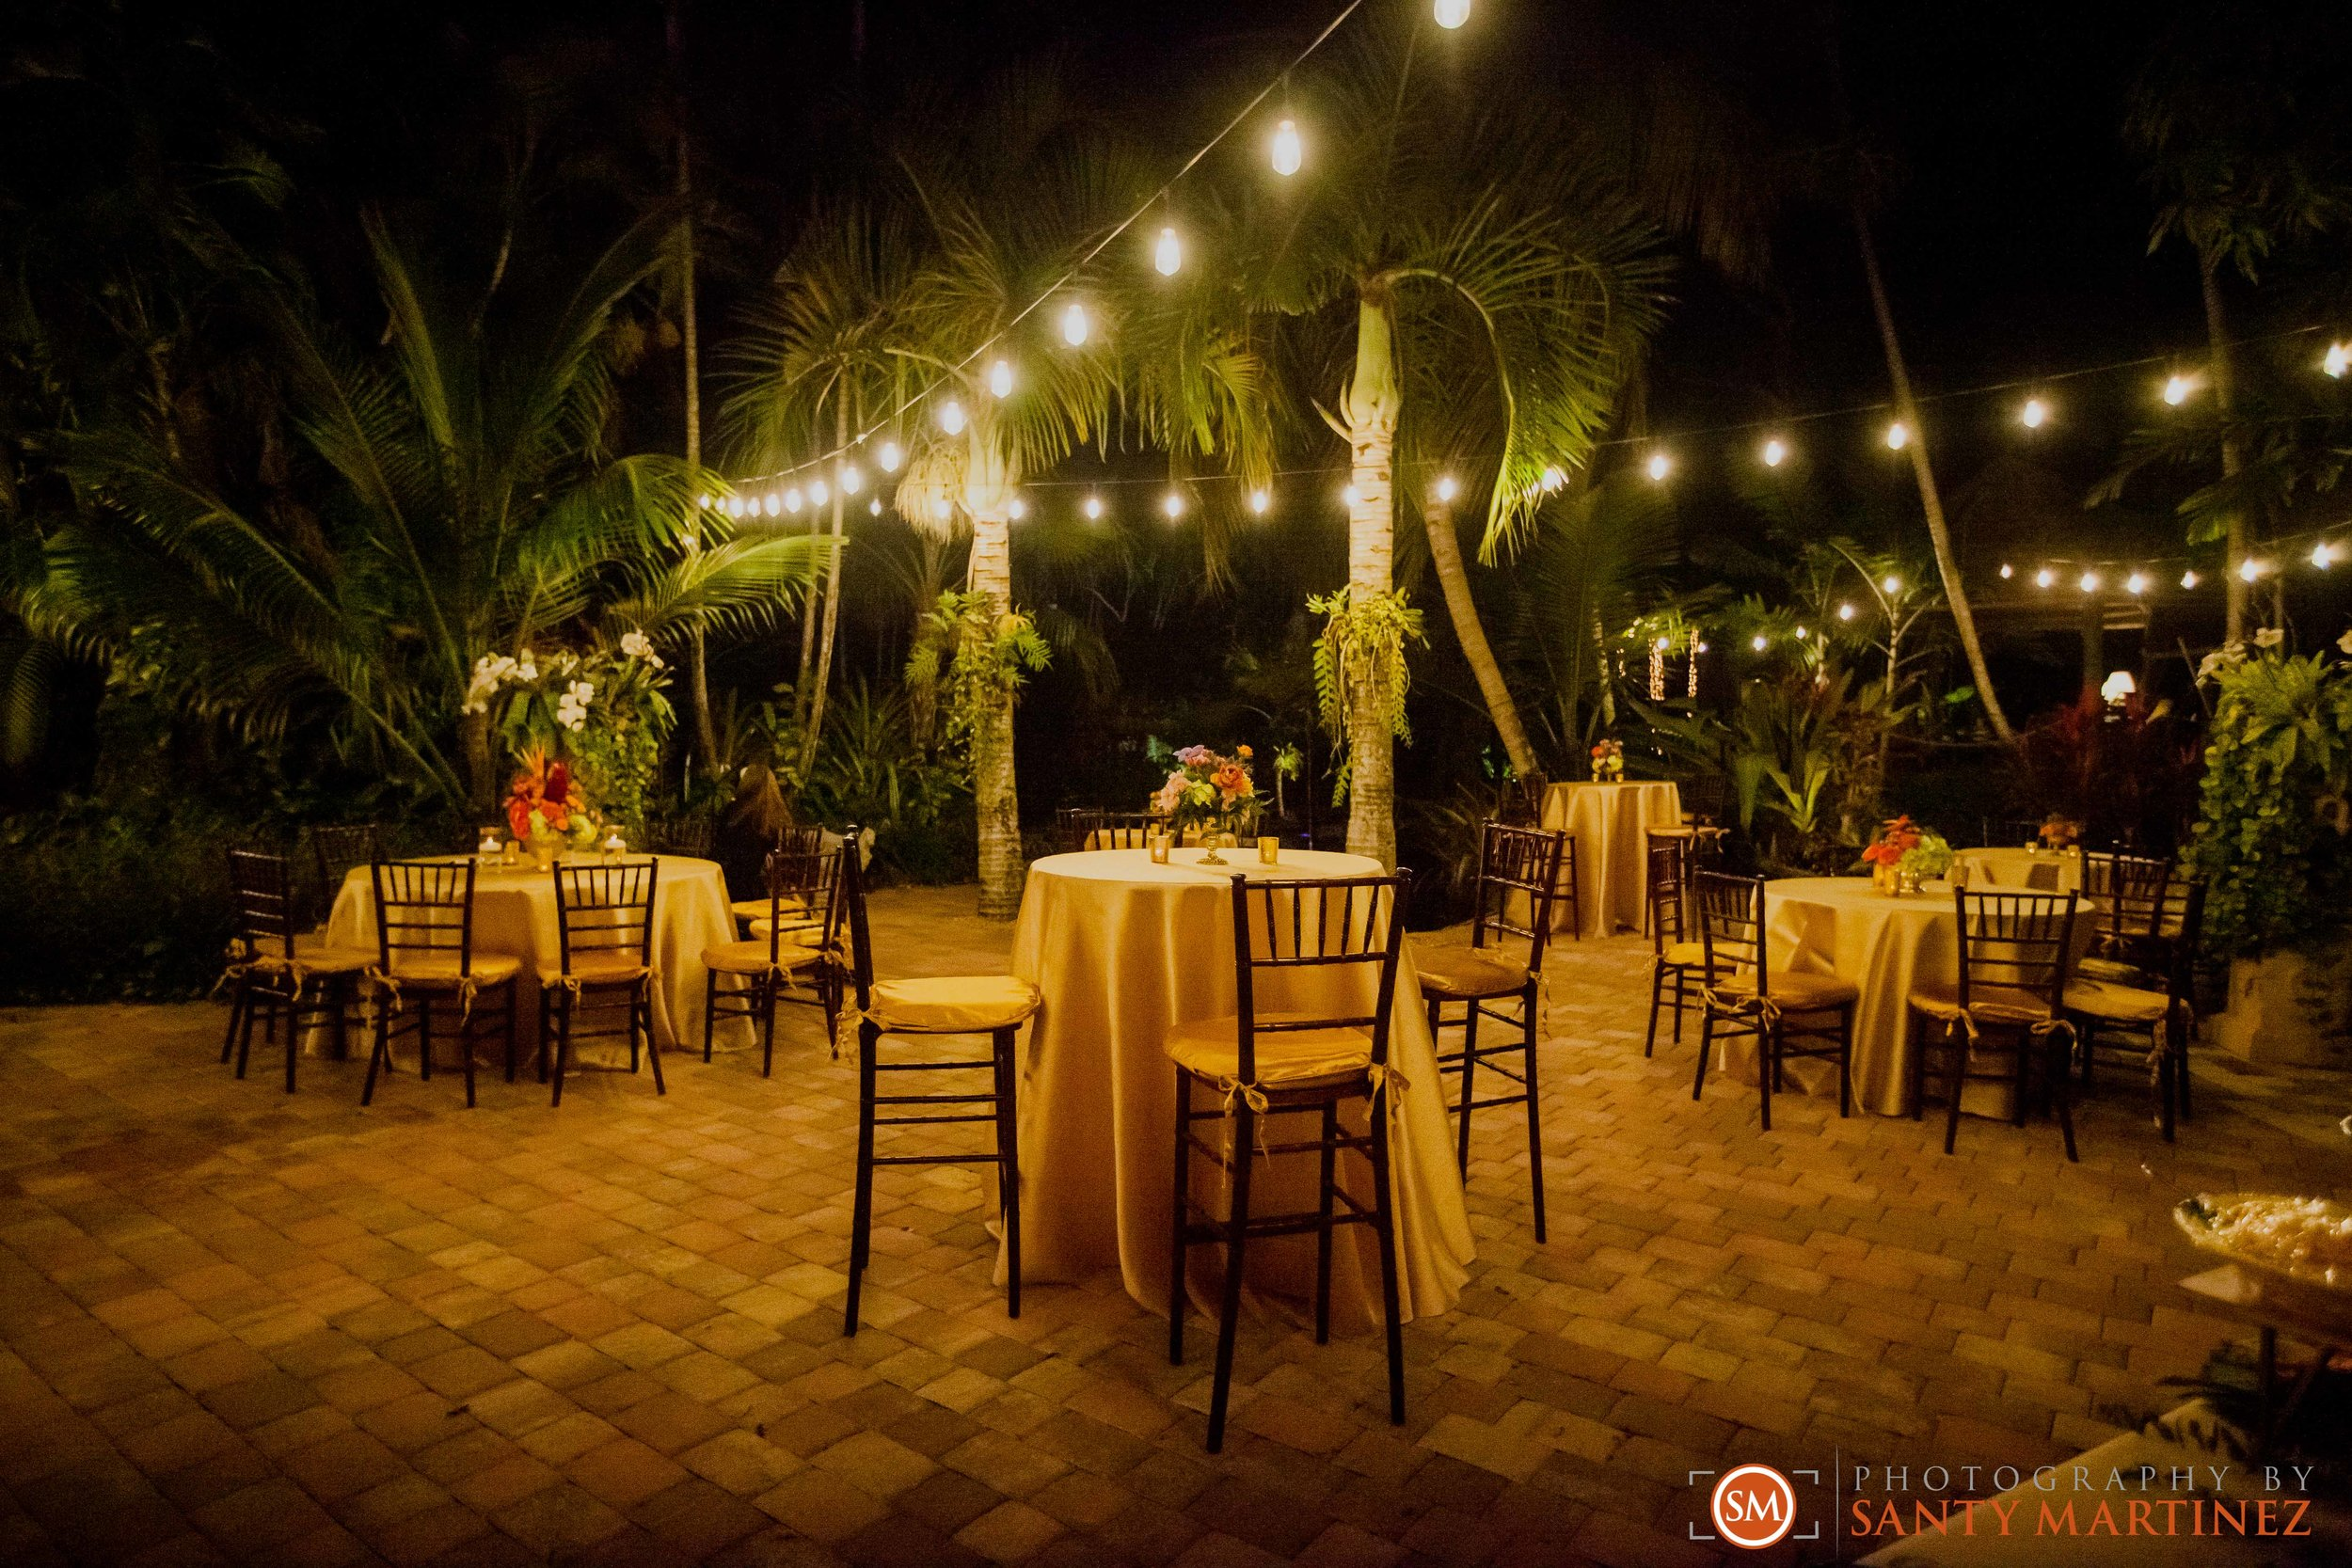 Wedding+at+the+The+Miller+Plantation+-+Santy+Martinez-42.jpg